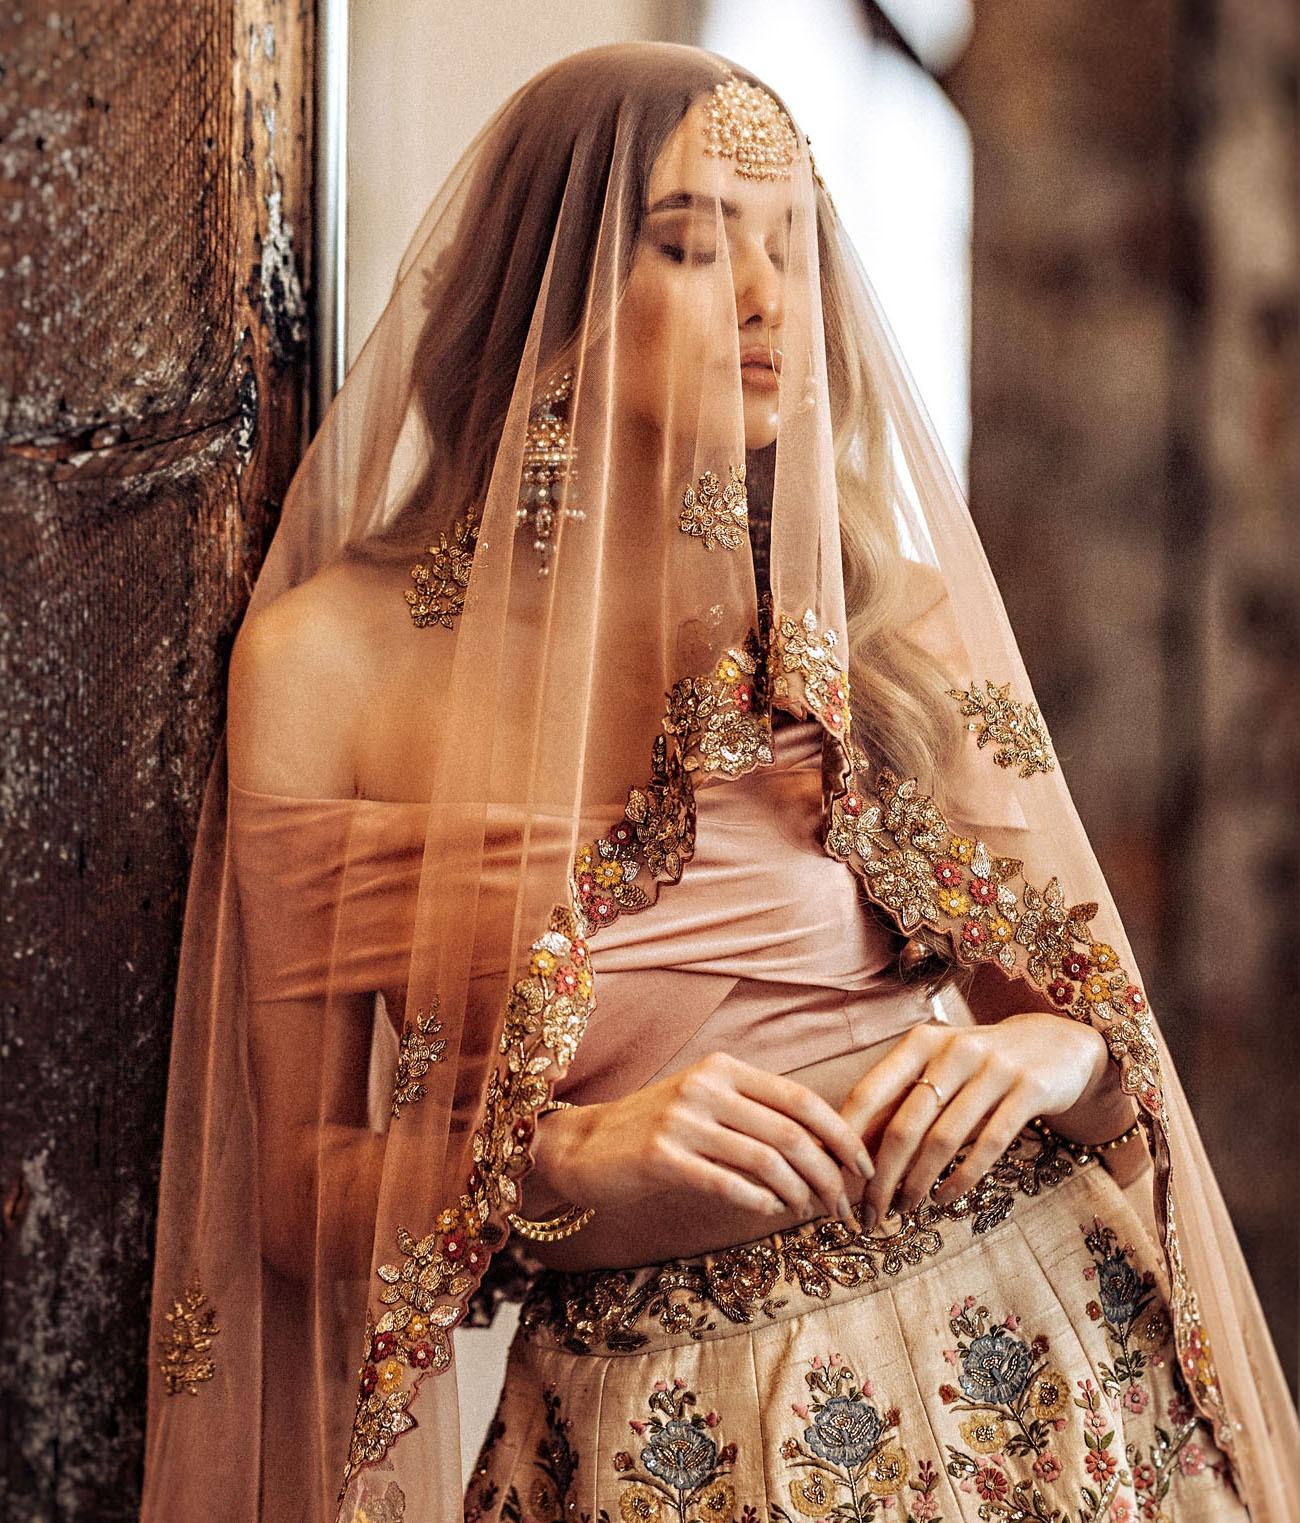 Bride wears blushed traditional Indian wedding clothes and jewelry